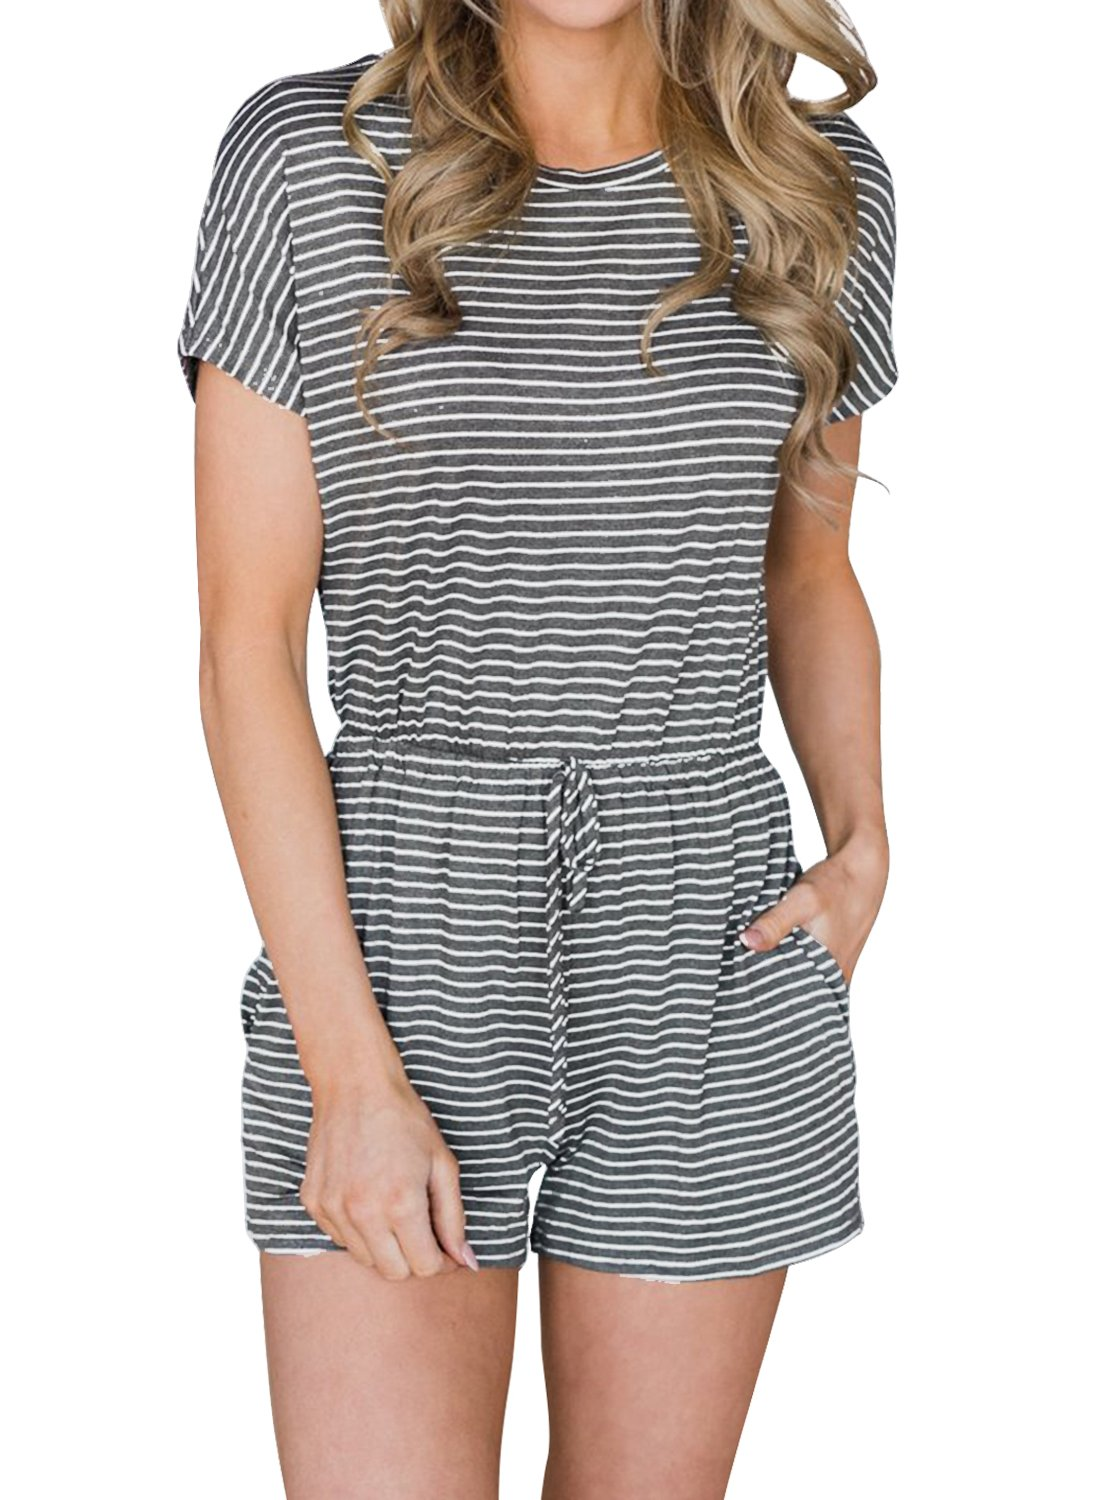 MIHOLL Women's Casual Rompers Short Sleeve Striped Jumpsuits with Pocket(Medium, Grey)